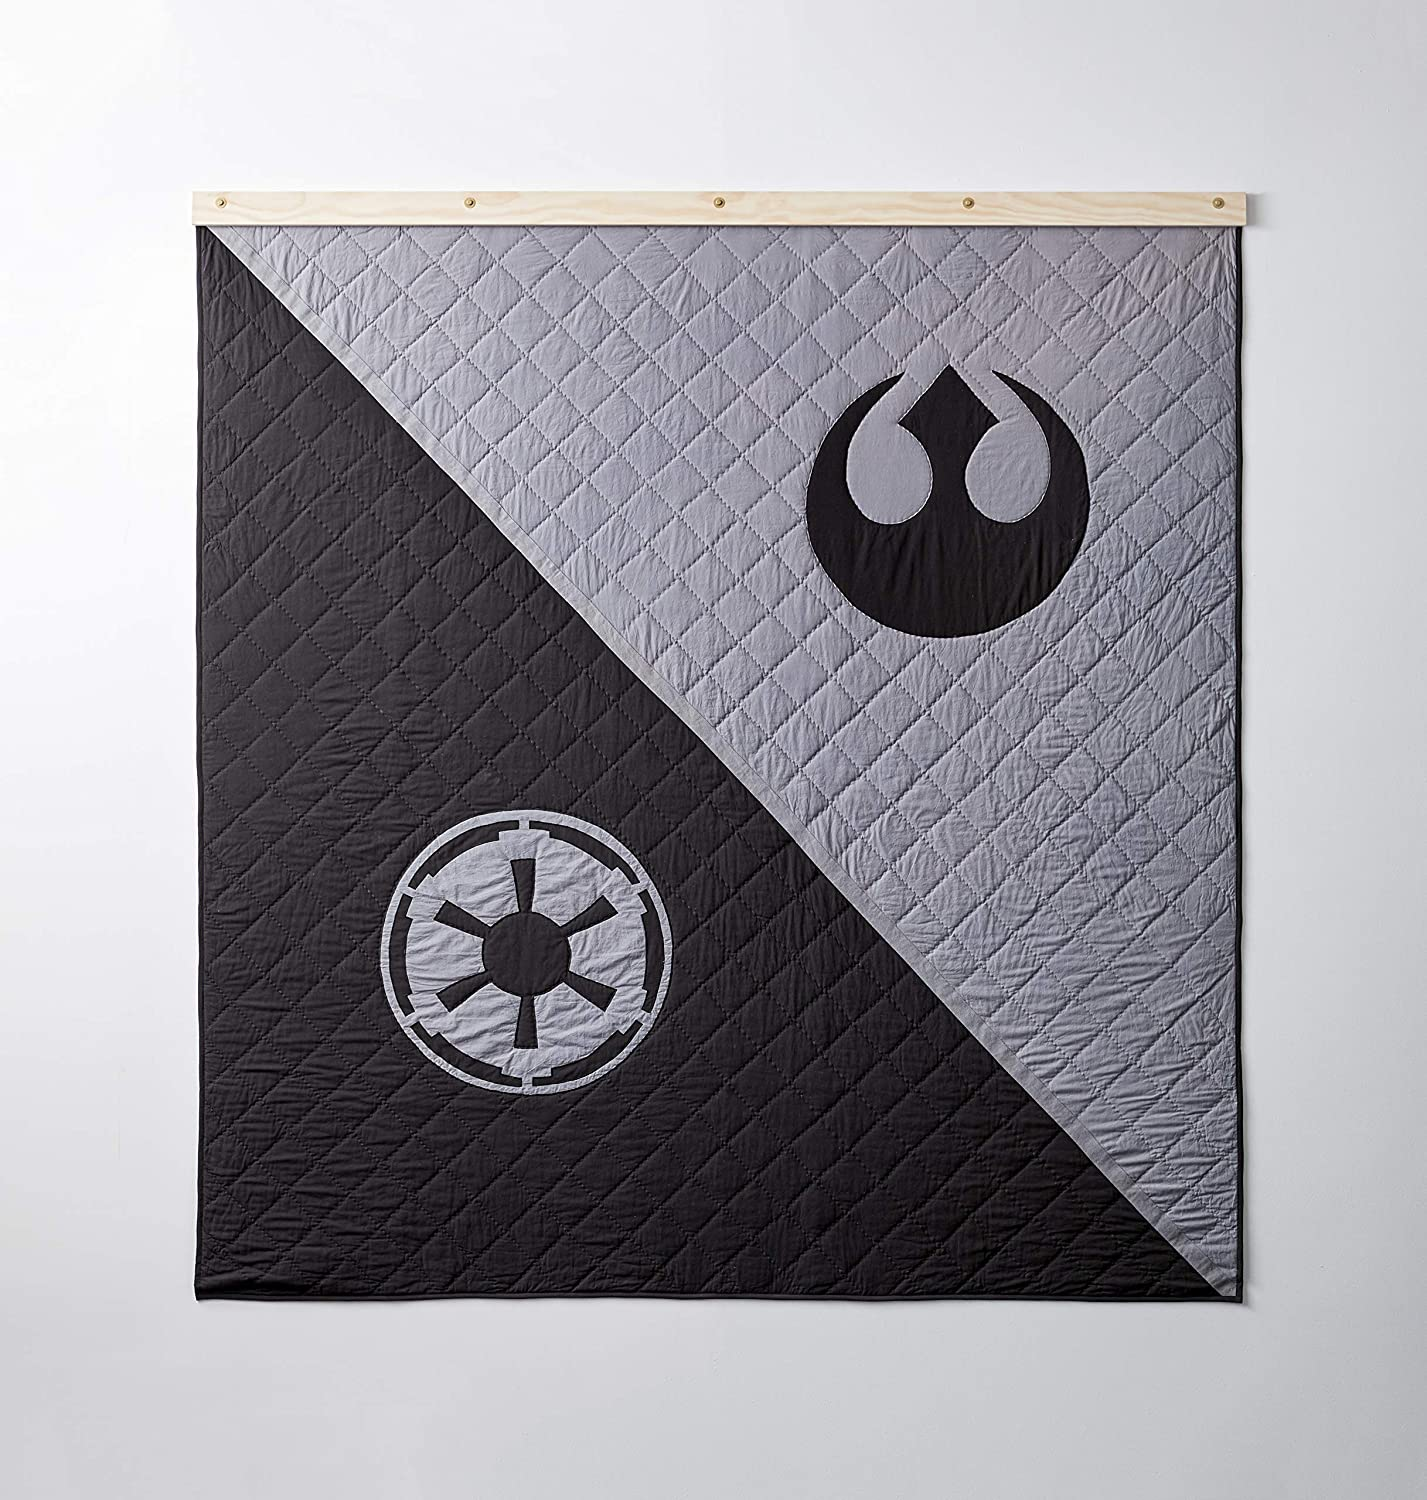 Bokser Home Limited Edition Star Wars Collectors Quilt, King | Officially Licensed Bedding with Rebel and Empire Art | Hand-Stitched Long-Staple Cotton | Super Soft Cotton Fill